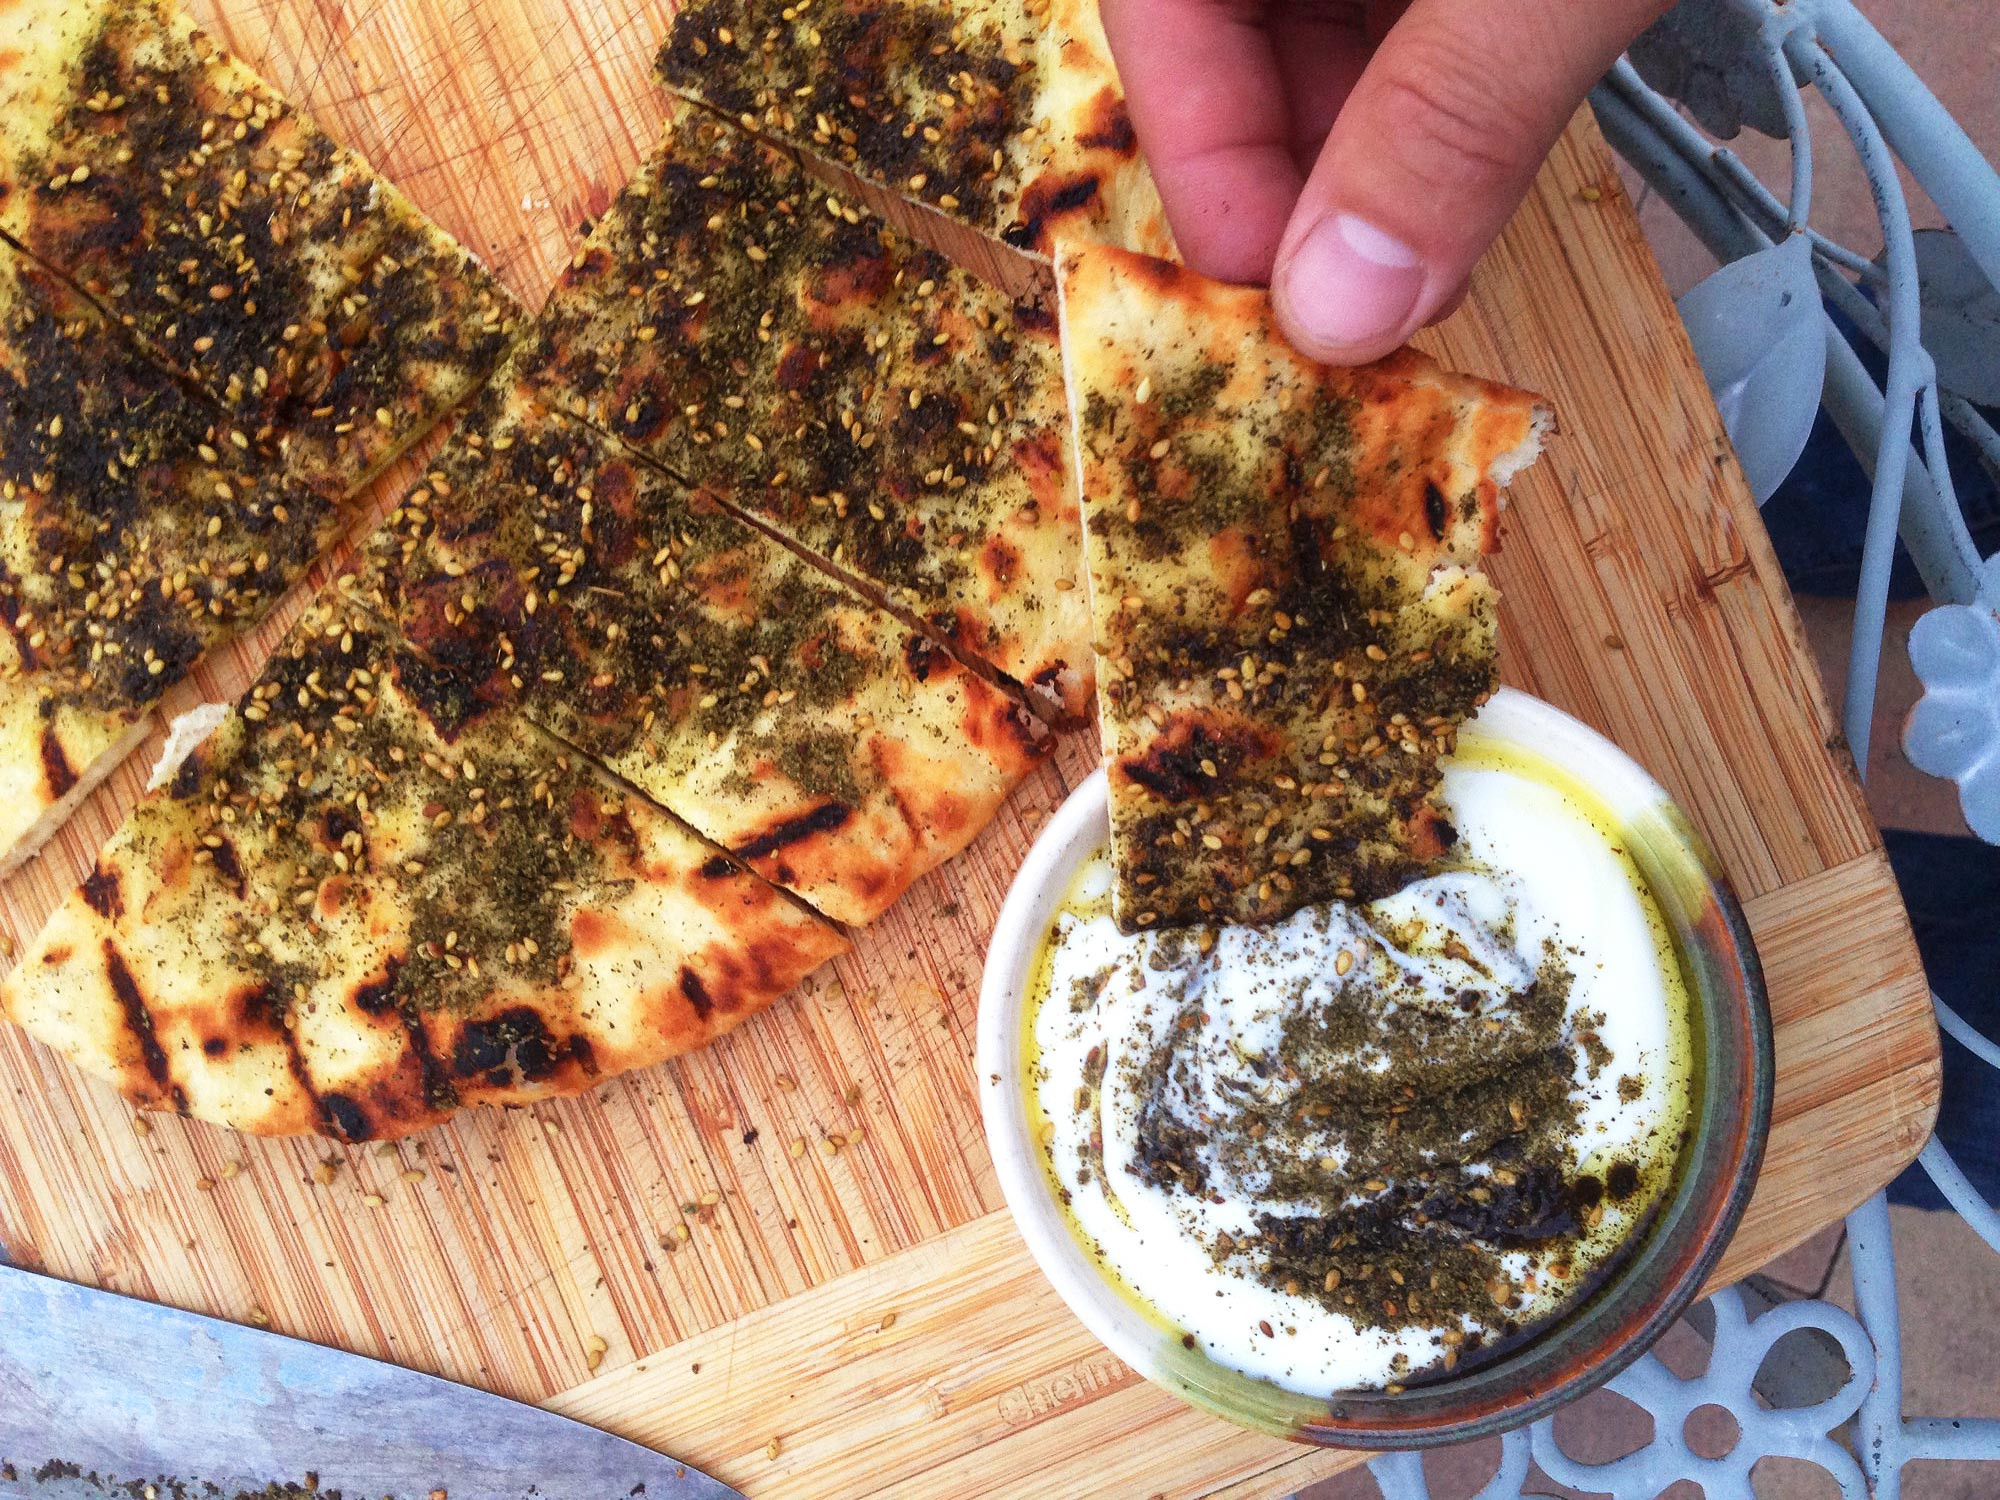 Middle Eastern Flatbread Recipes  Super Simple From Scratch Grilled Flatbread With Olive Oil